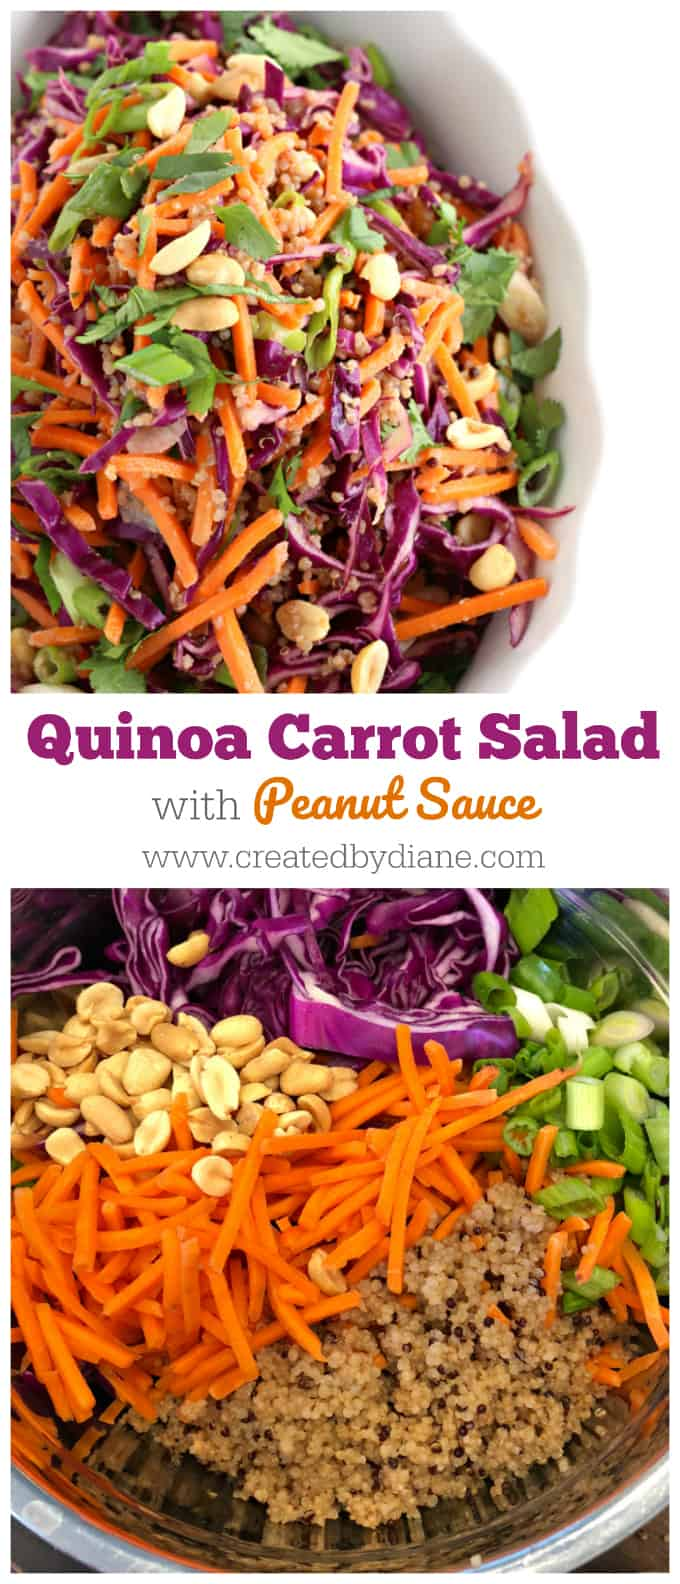 quinoa carrot salad with peanut sauce www.createdbydiane.com #lowcarb #salad #partyfood #vegetarian